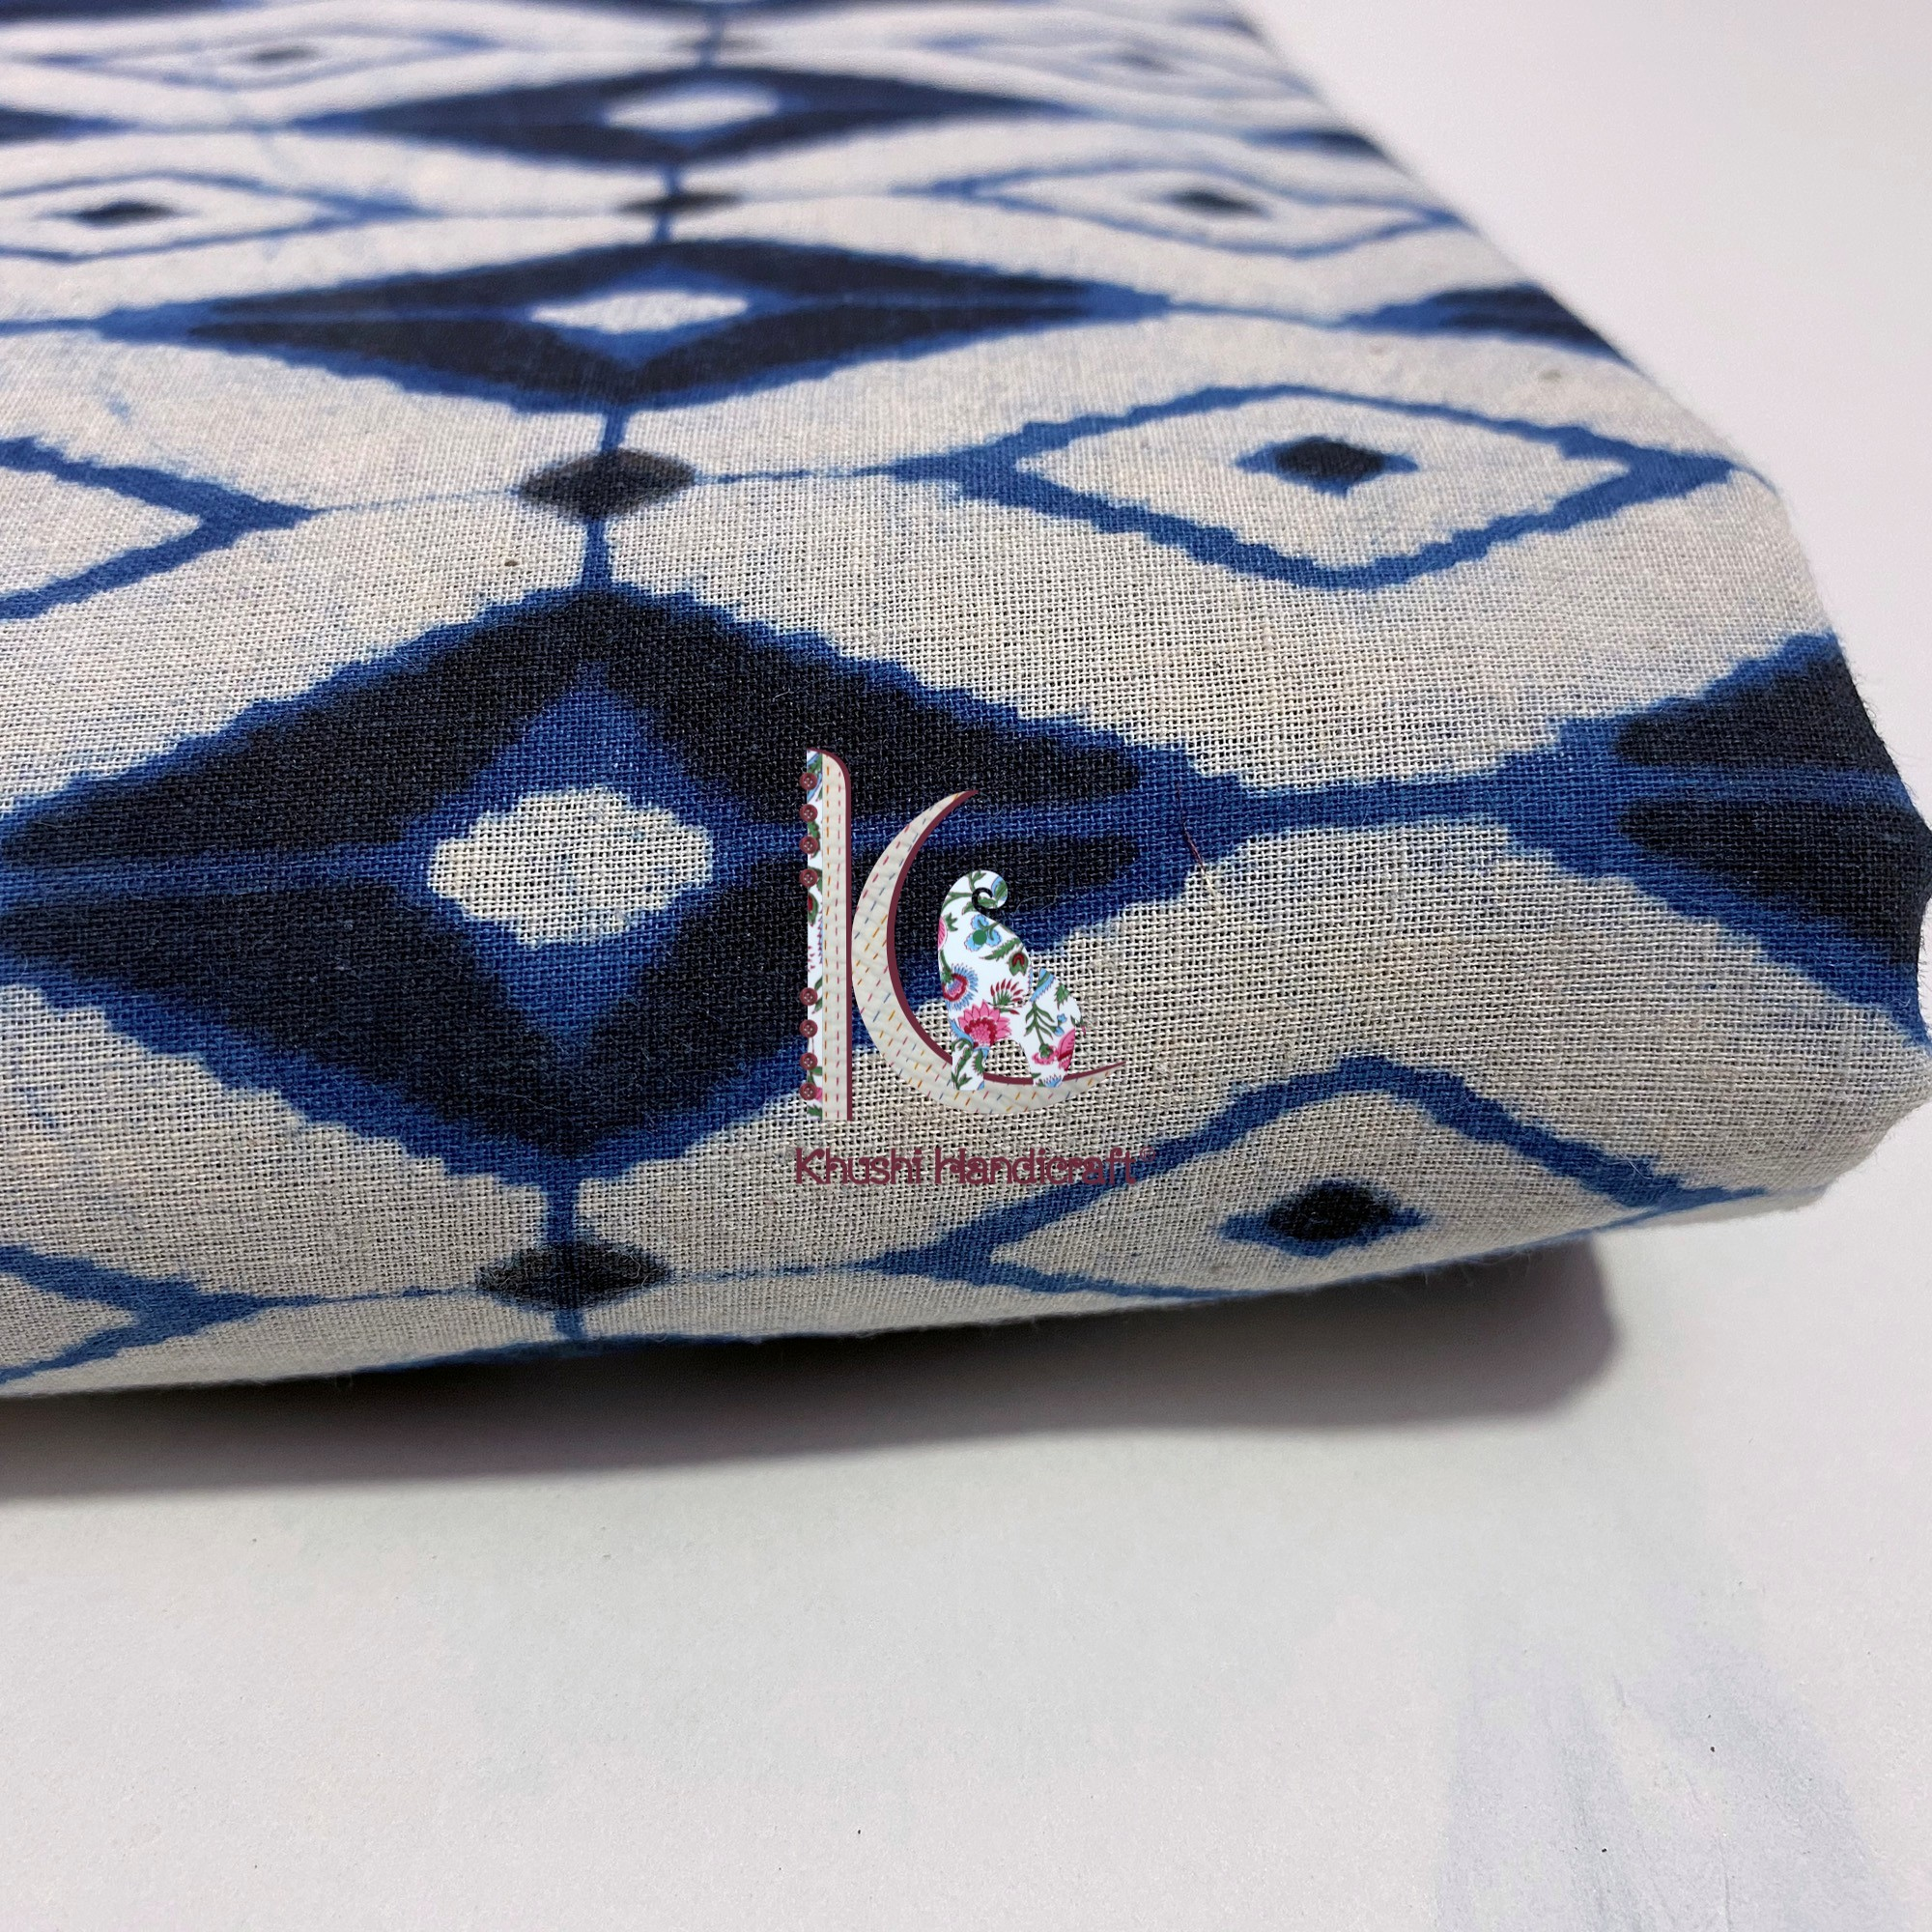 New Design Cotton Dress Cloth For Women Printed Fabric